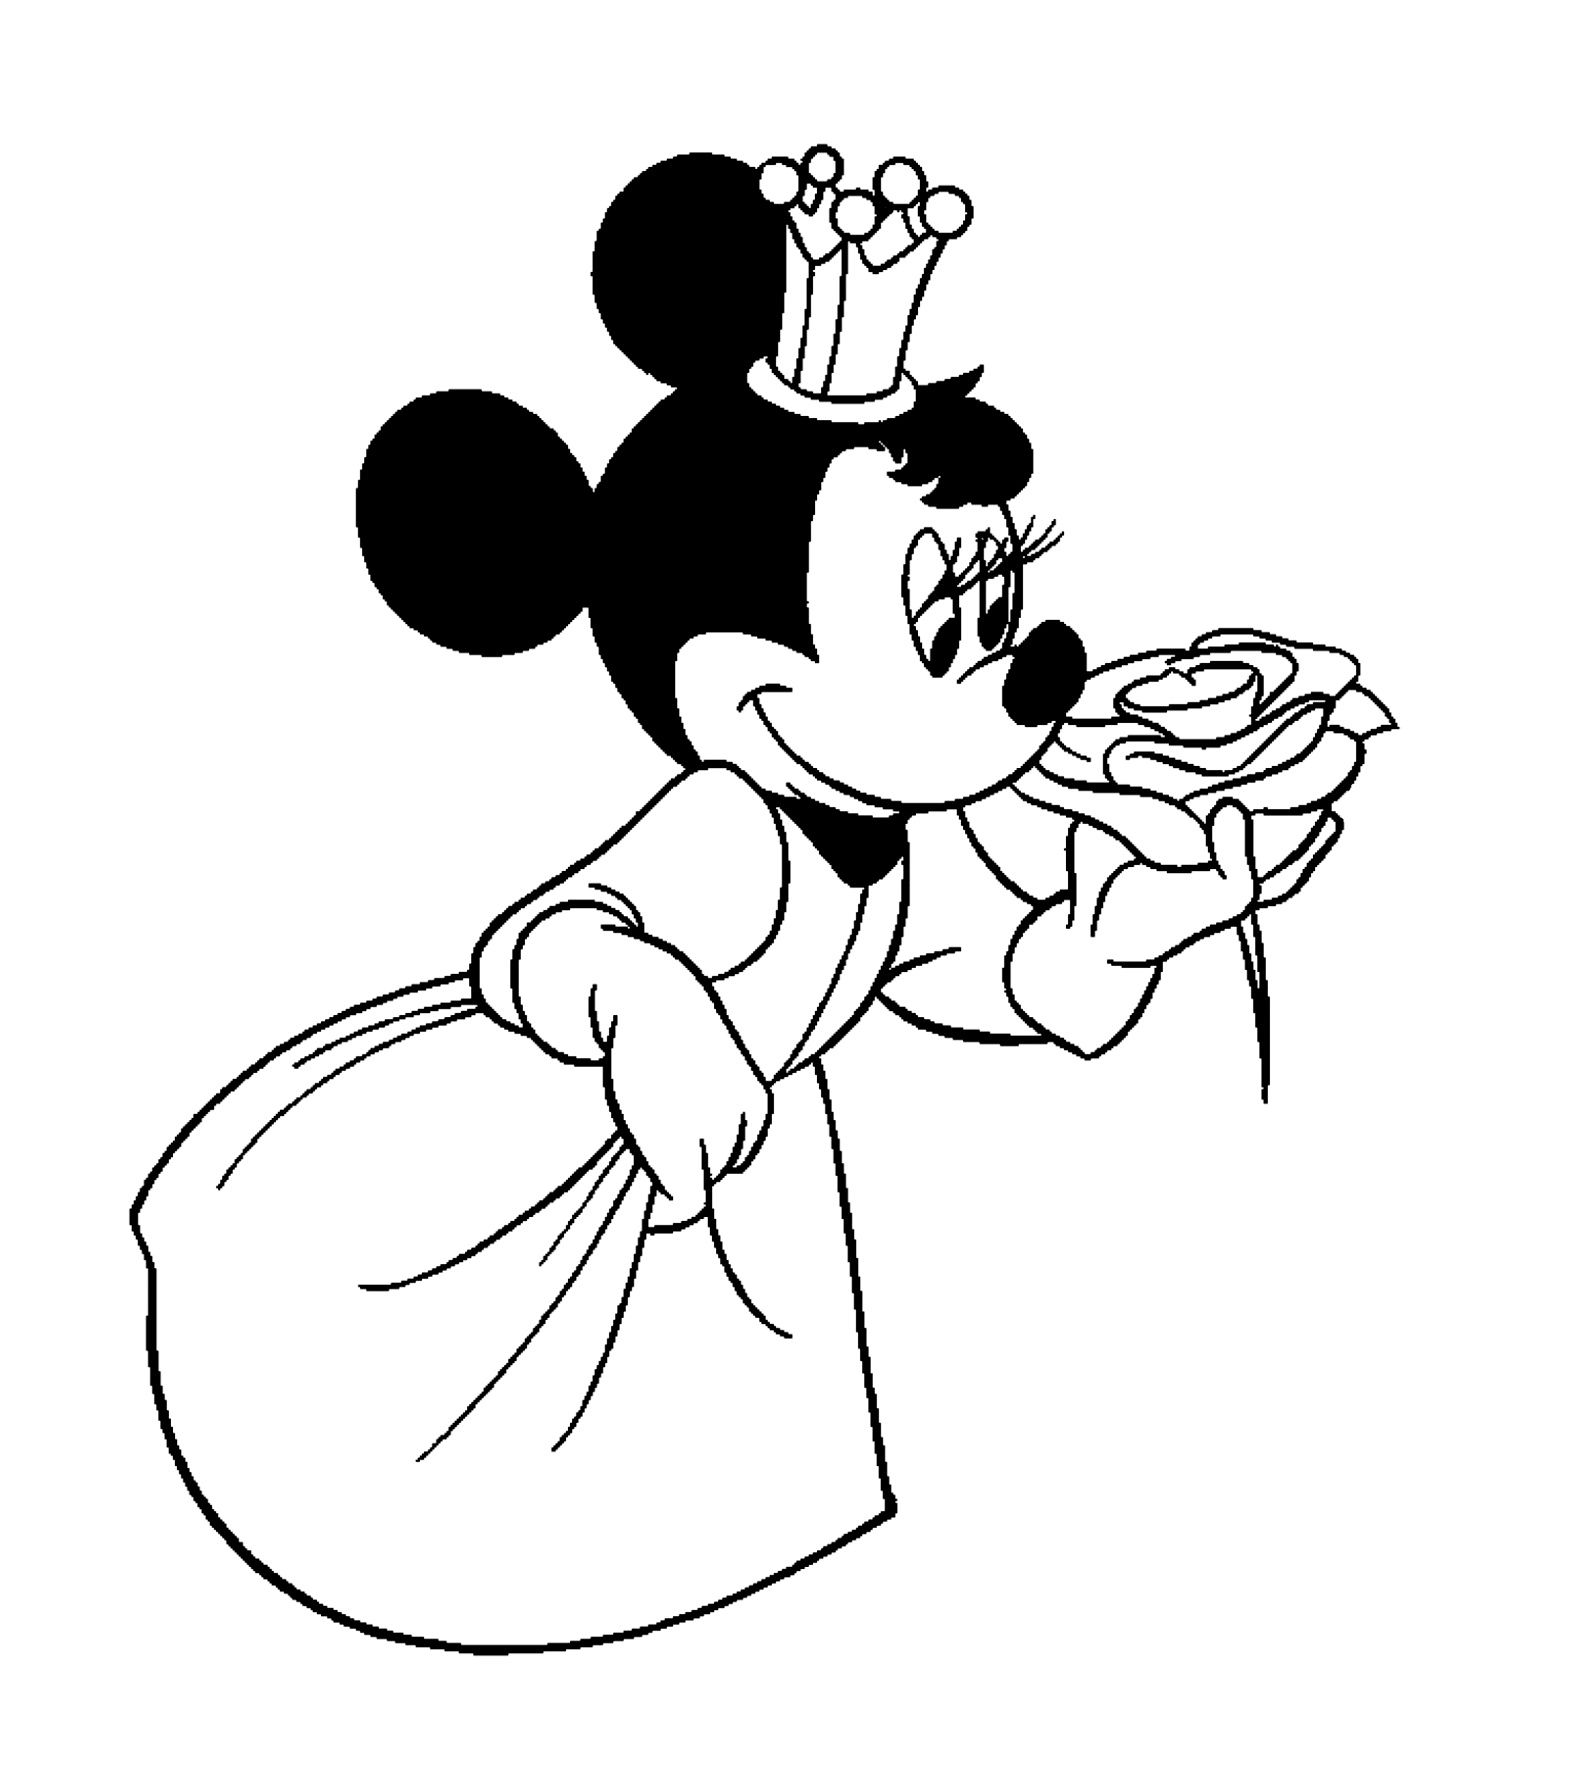 10 Impressionnant De Coloriage Disney Mickey Photographie Coloriage Minnie Coloriage Mickey Coloriage Mickey A Imprimer